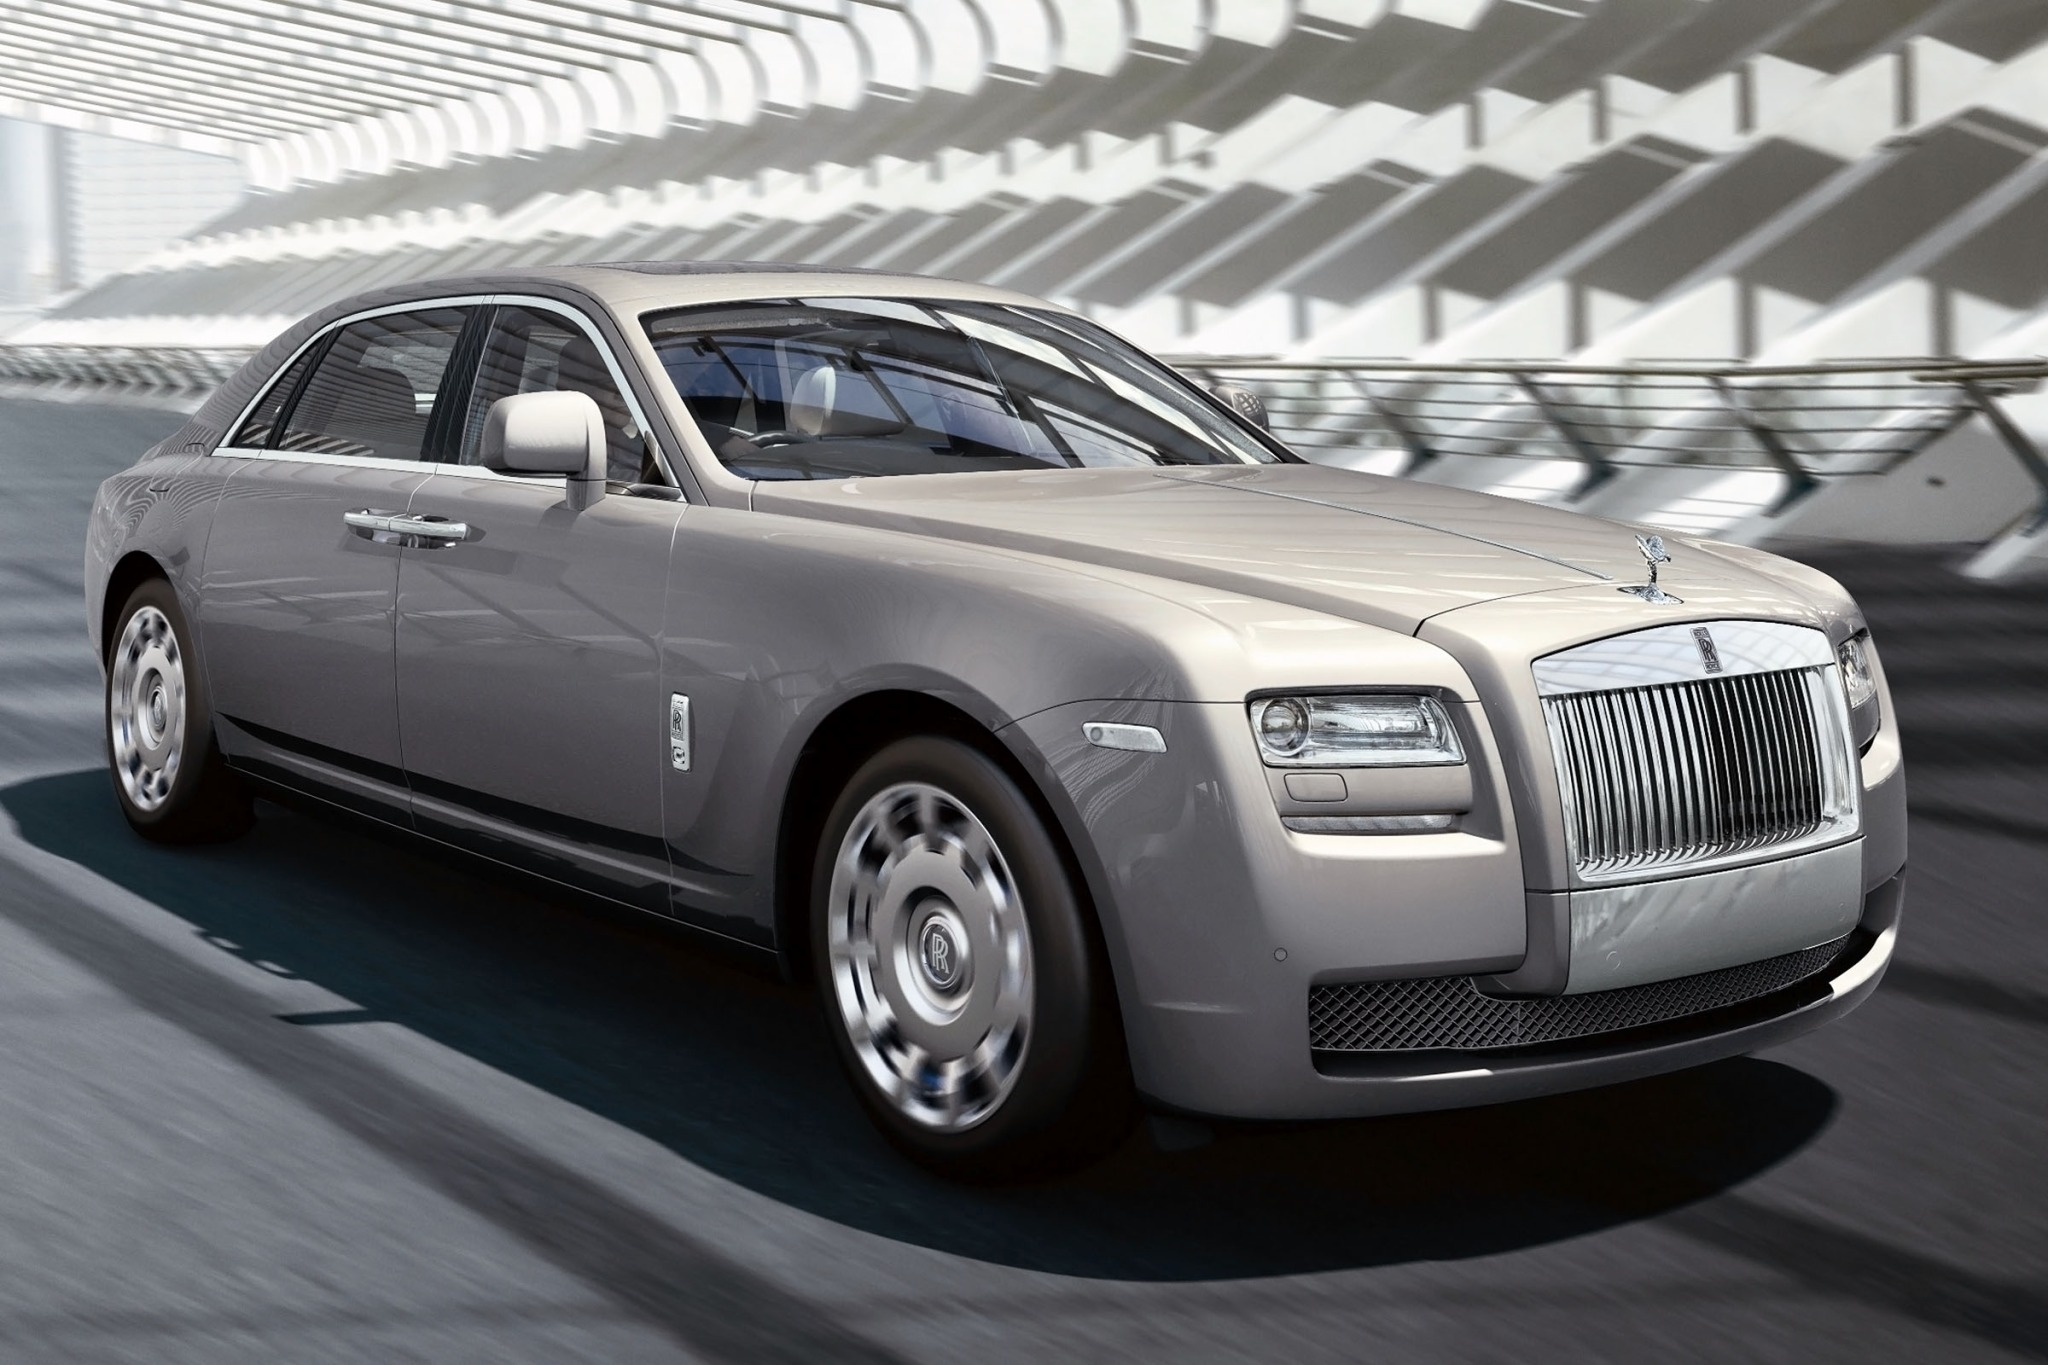 2012 Rolls-Royce Ghost EW interior #3